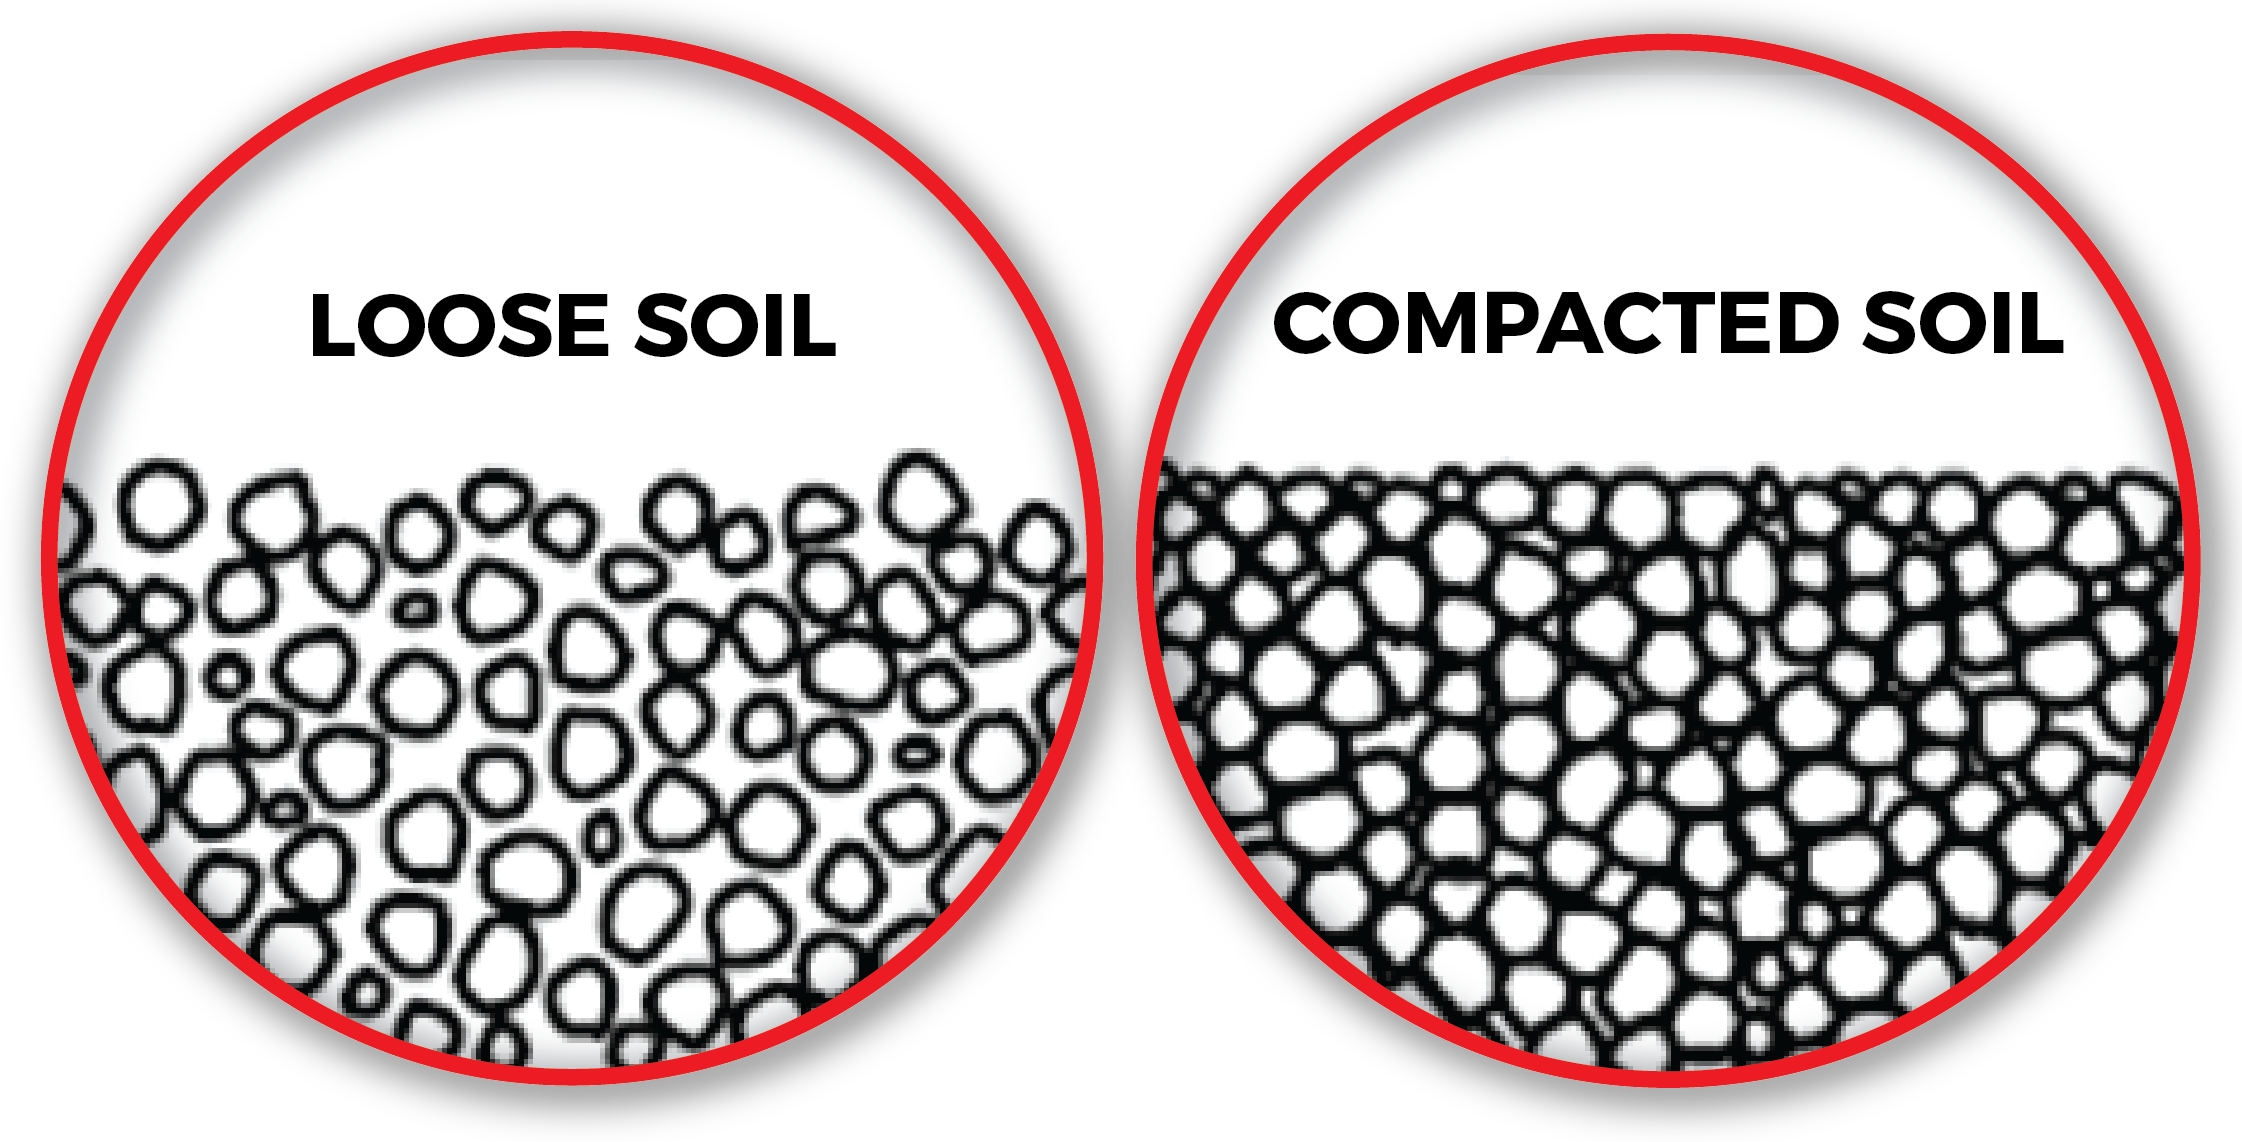 soilpic-01.png